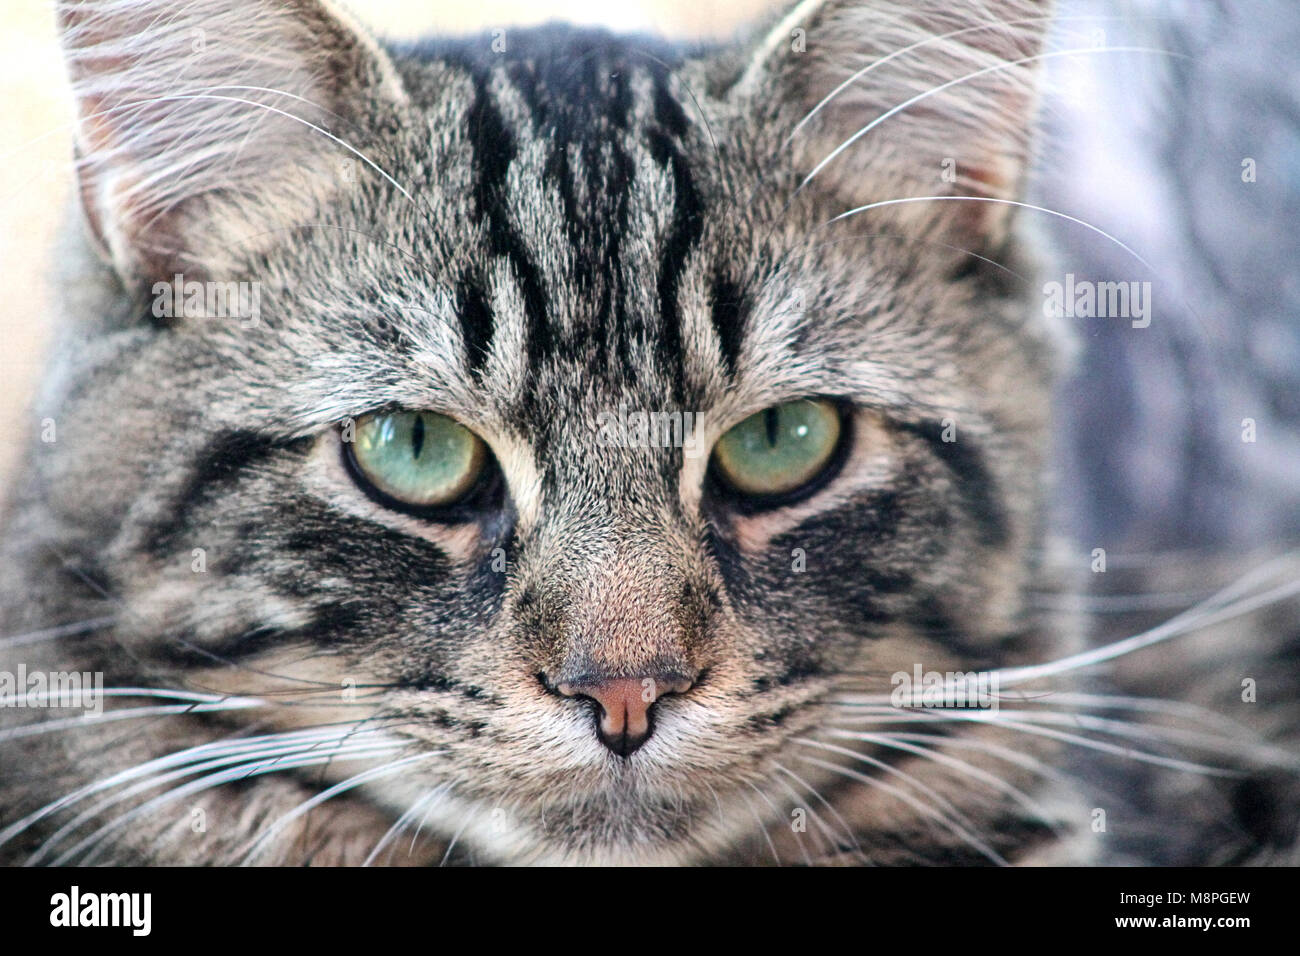 close up of a domestic pet tabby cats face Felis catus - Stock Image